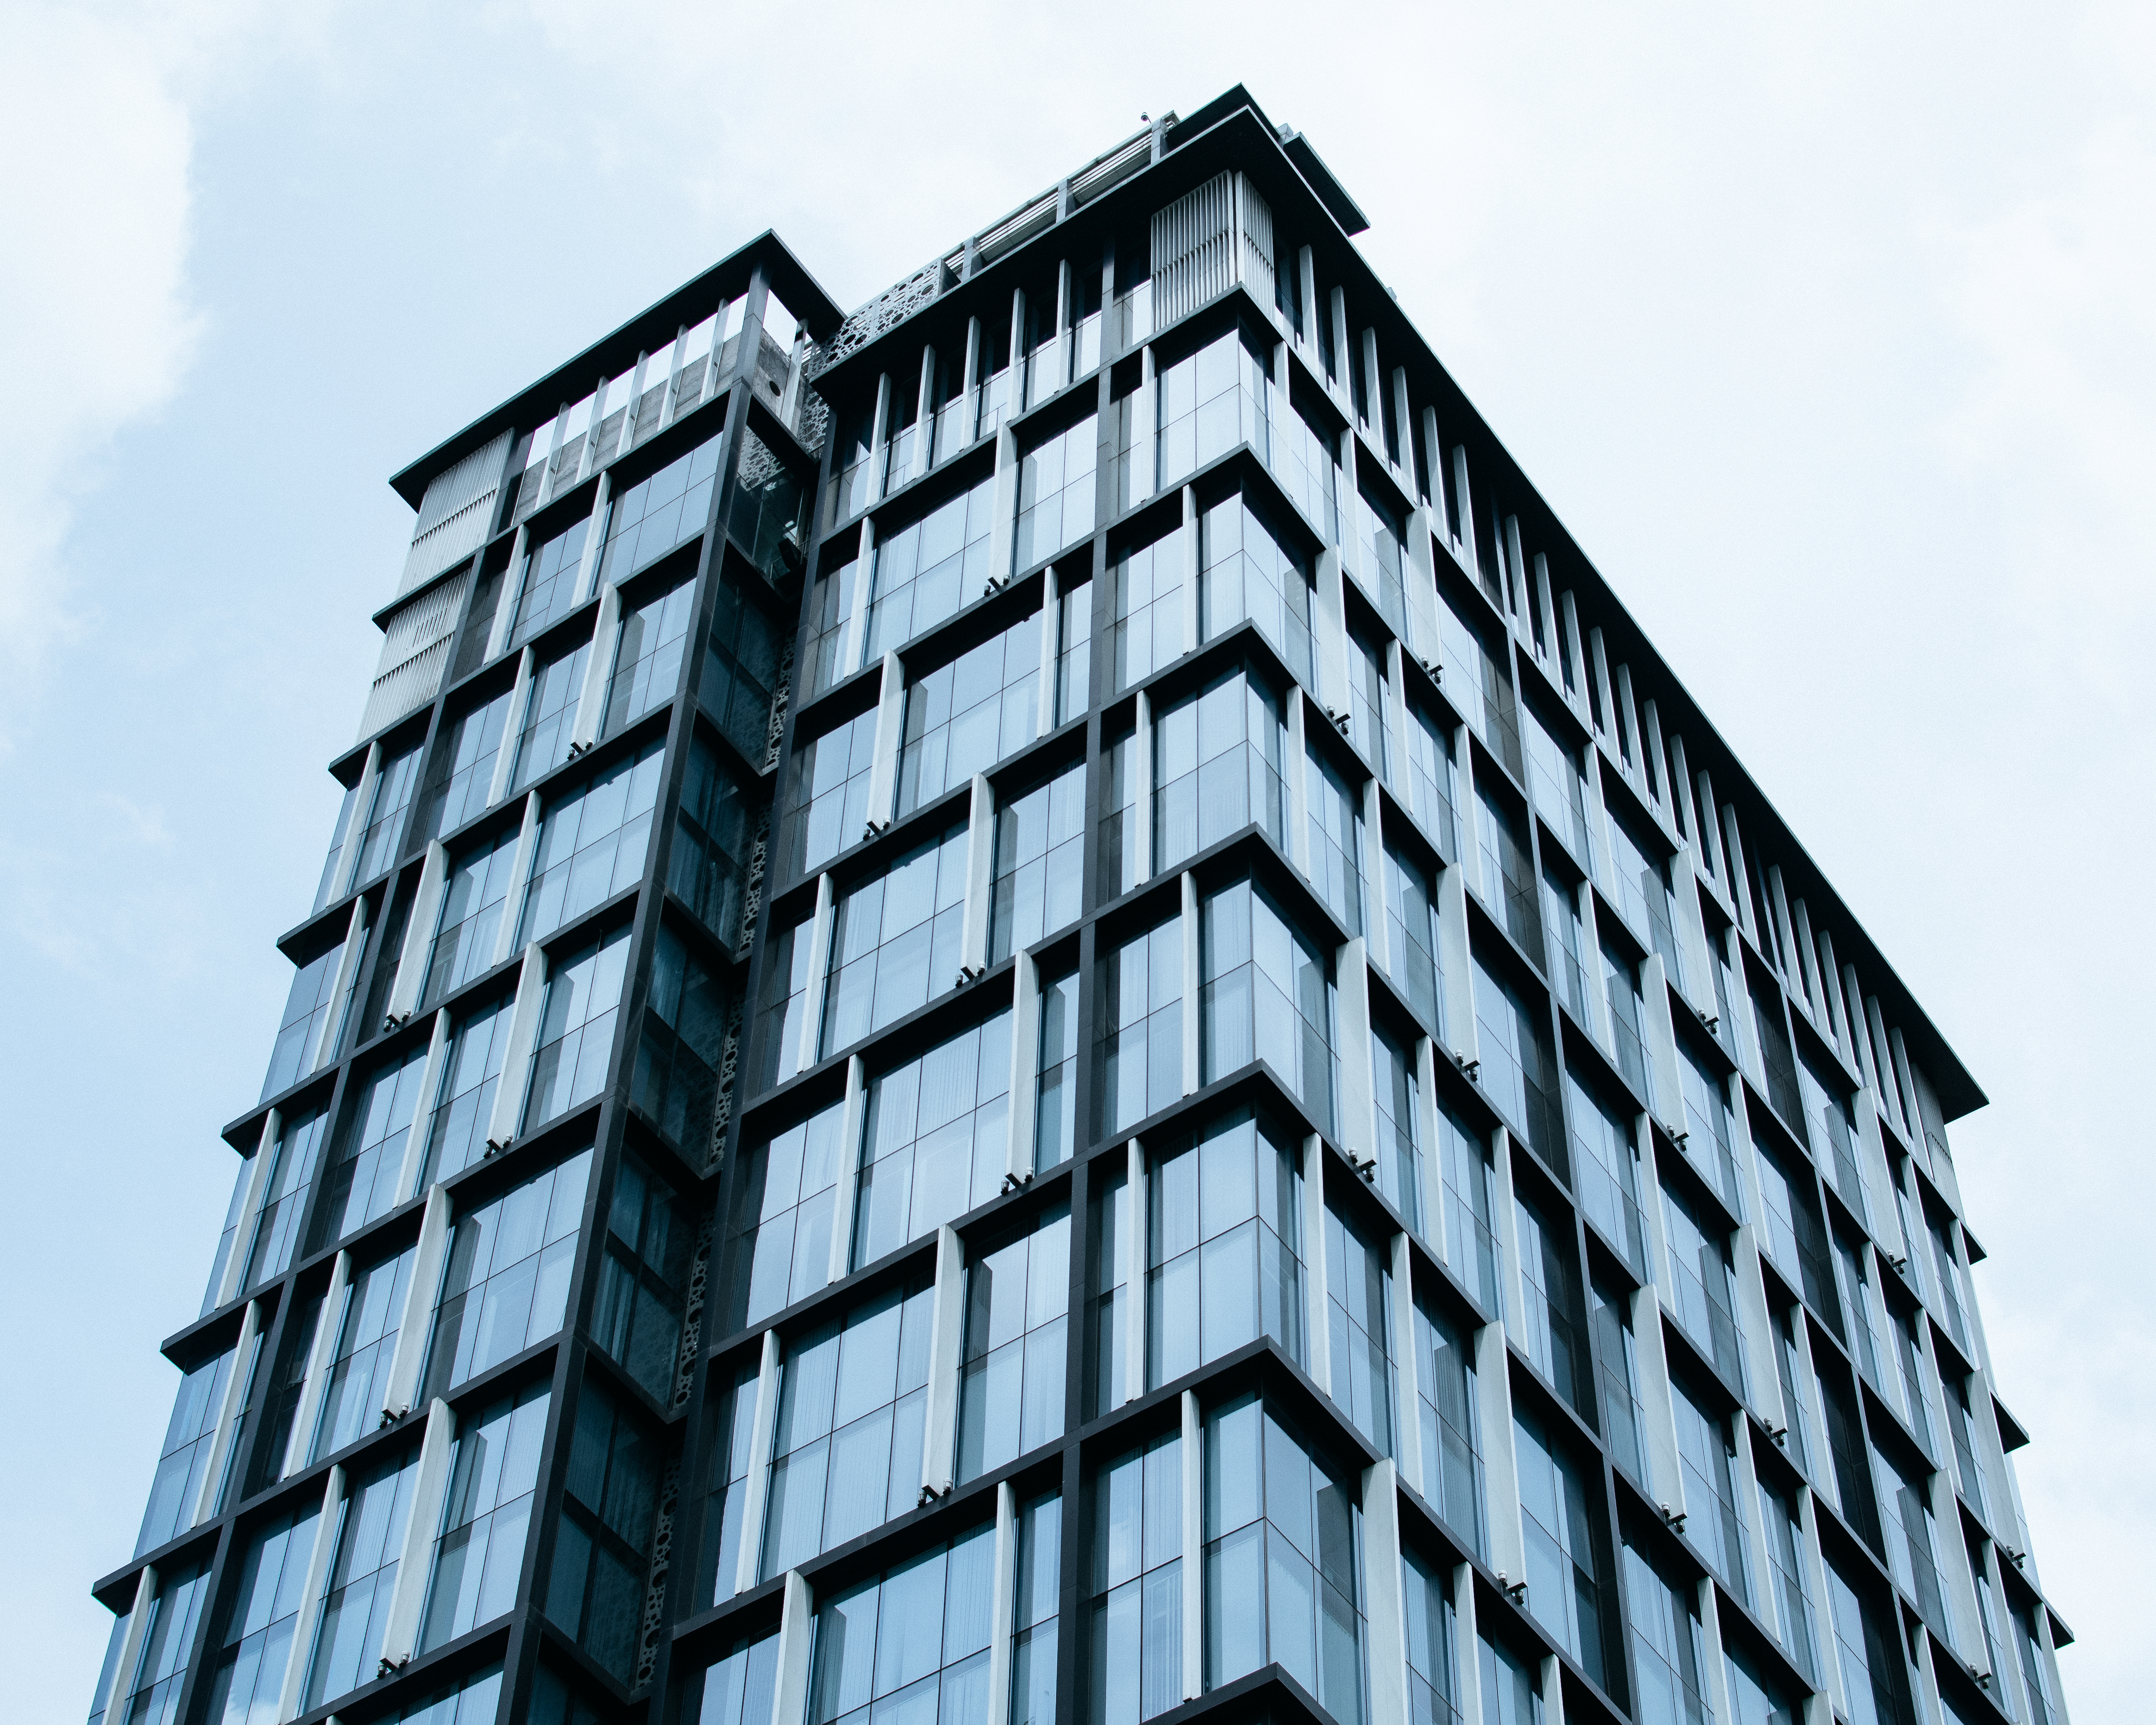 Curtain Glass Building Under Blue Sky Free Stock Photo